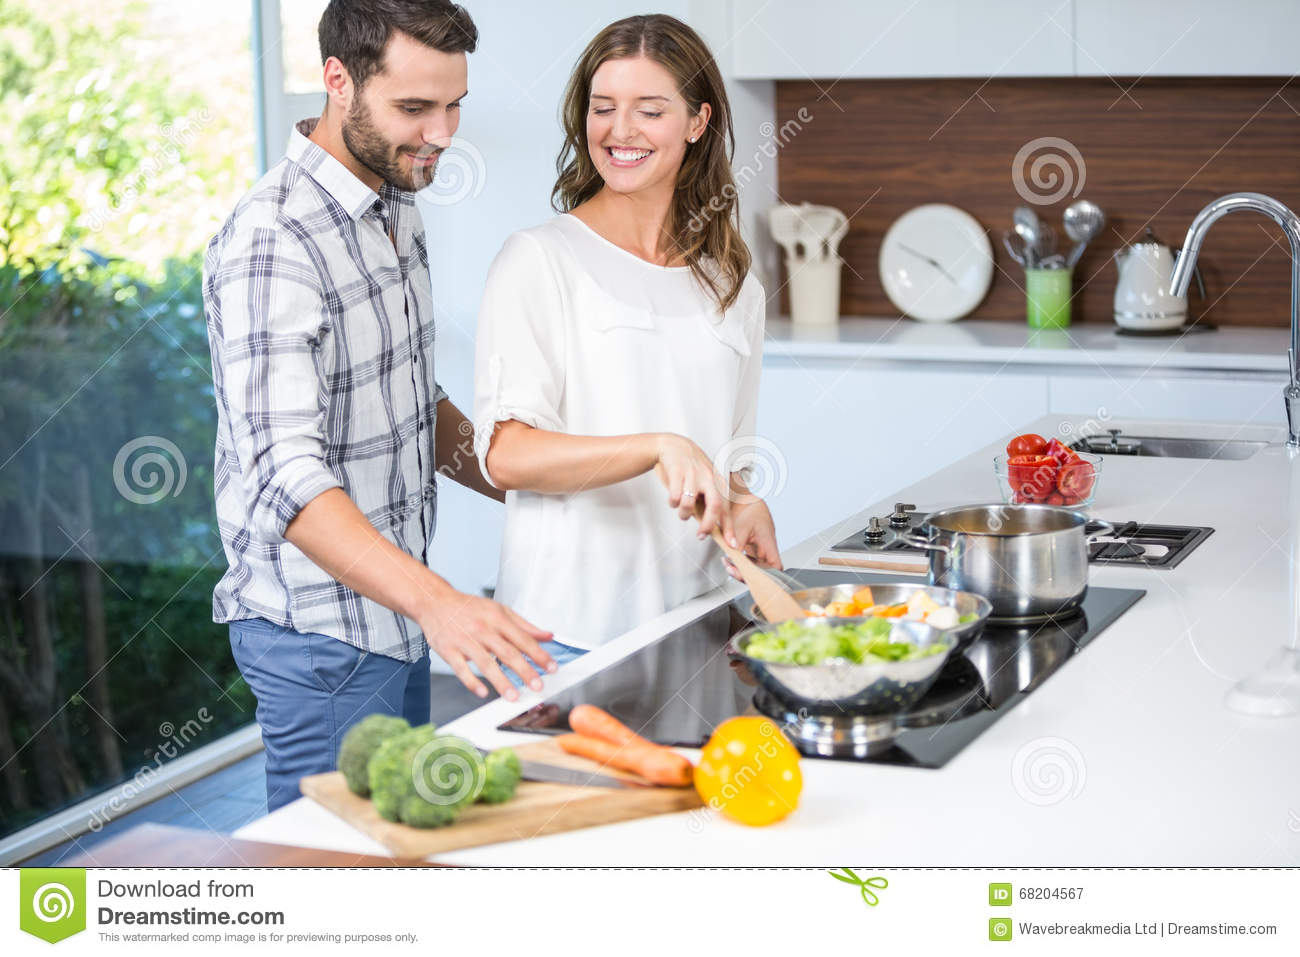 Man Helping Woman In Cooking Food Stock Photo - Image ...